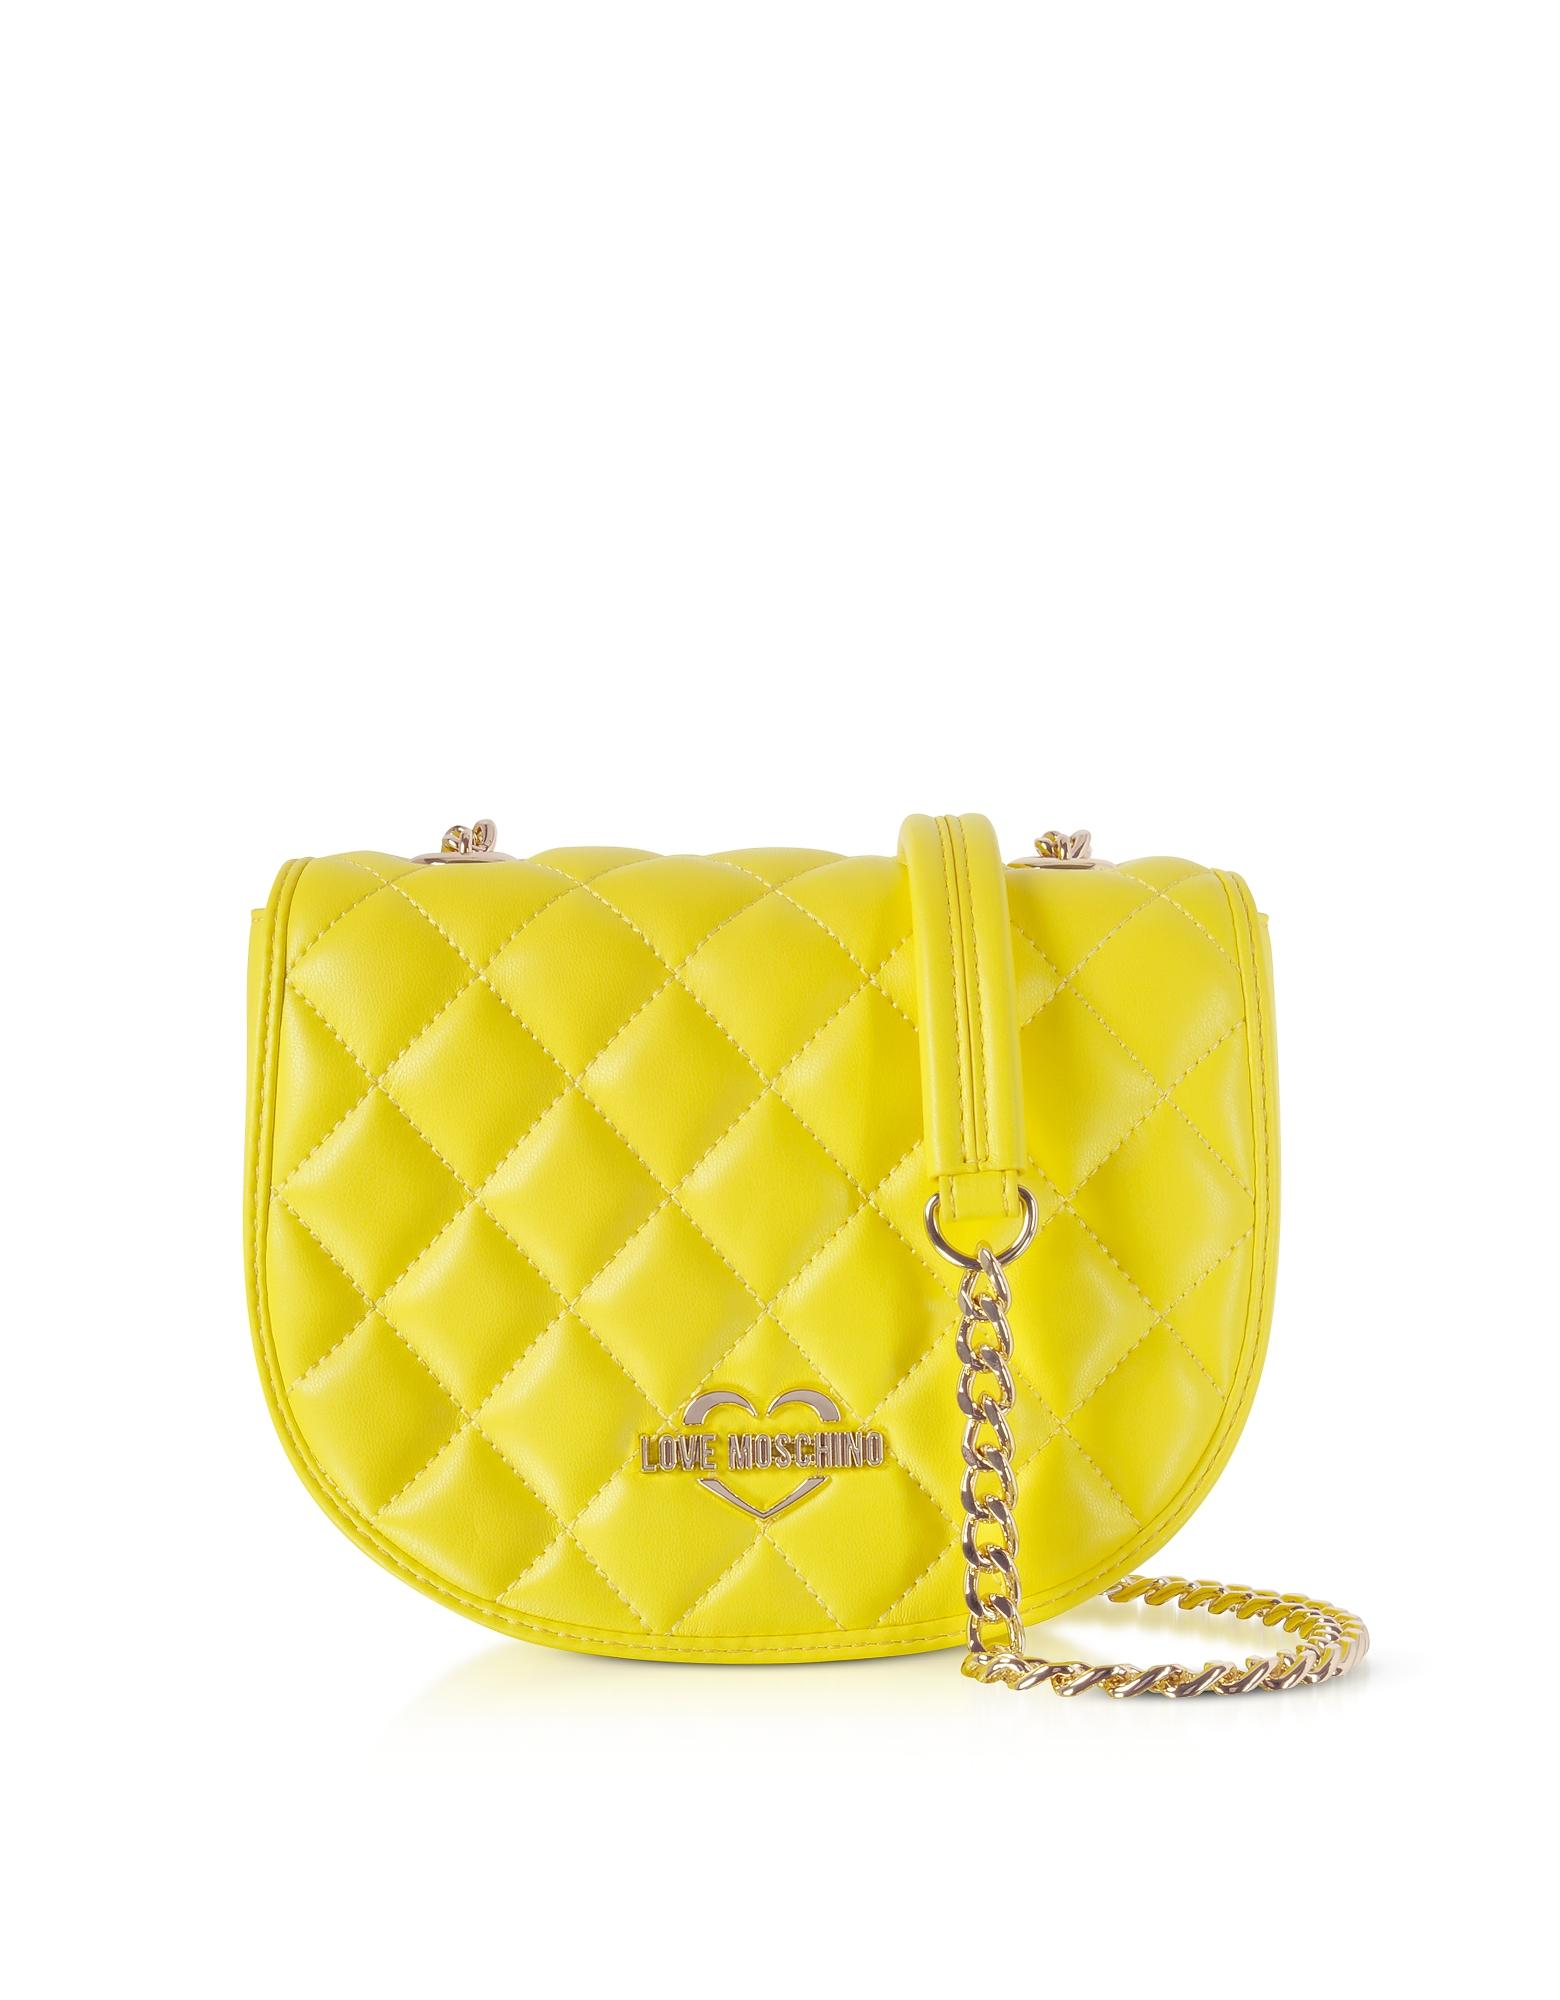 99d49bafcc Love Moschino Yellow Superquilted Eco-Leather Small Crossbody Bag ...